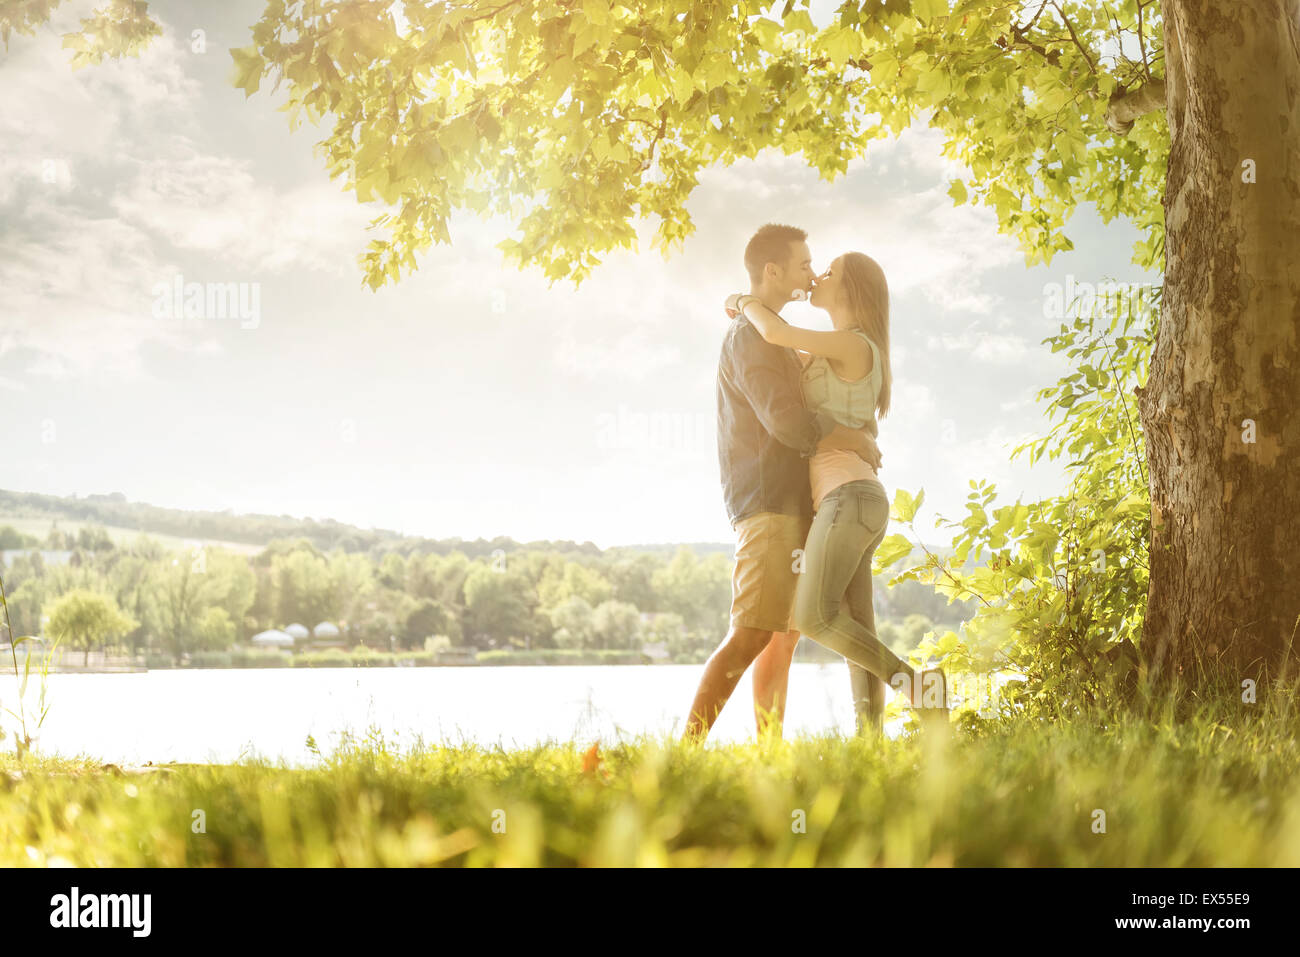 Couple in love sur le lac, sous les arbres, des baisers Photo Stock